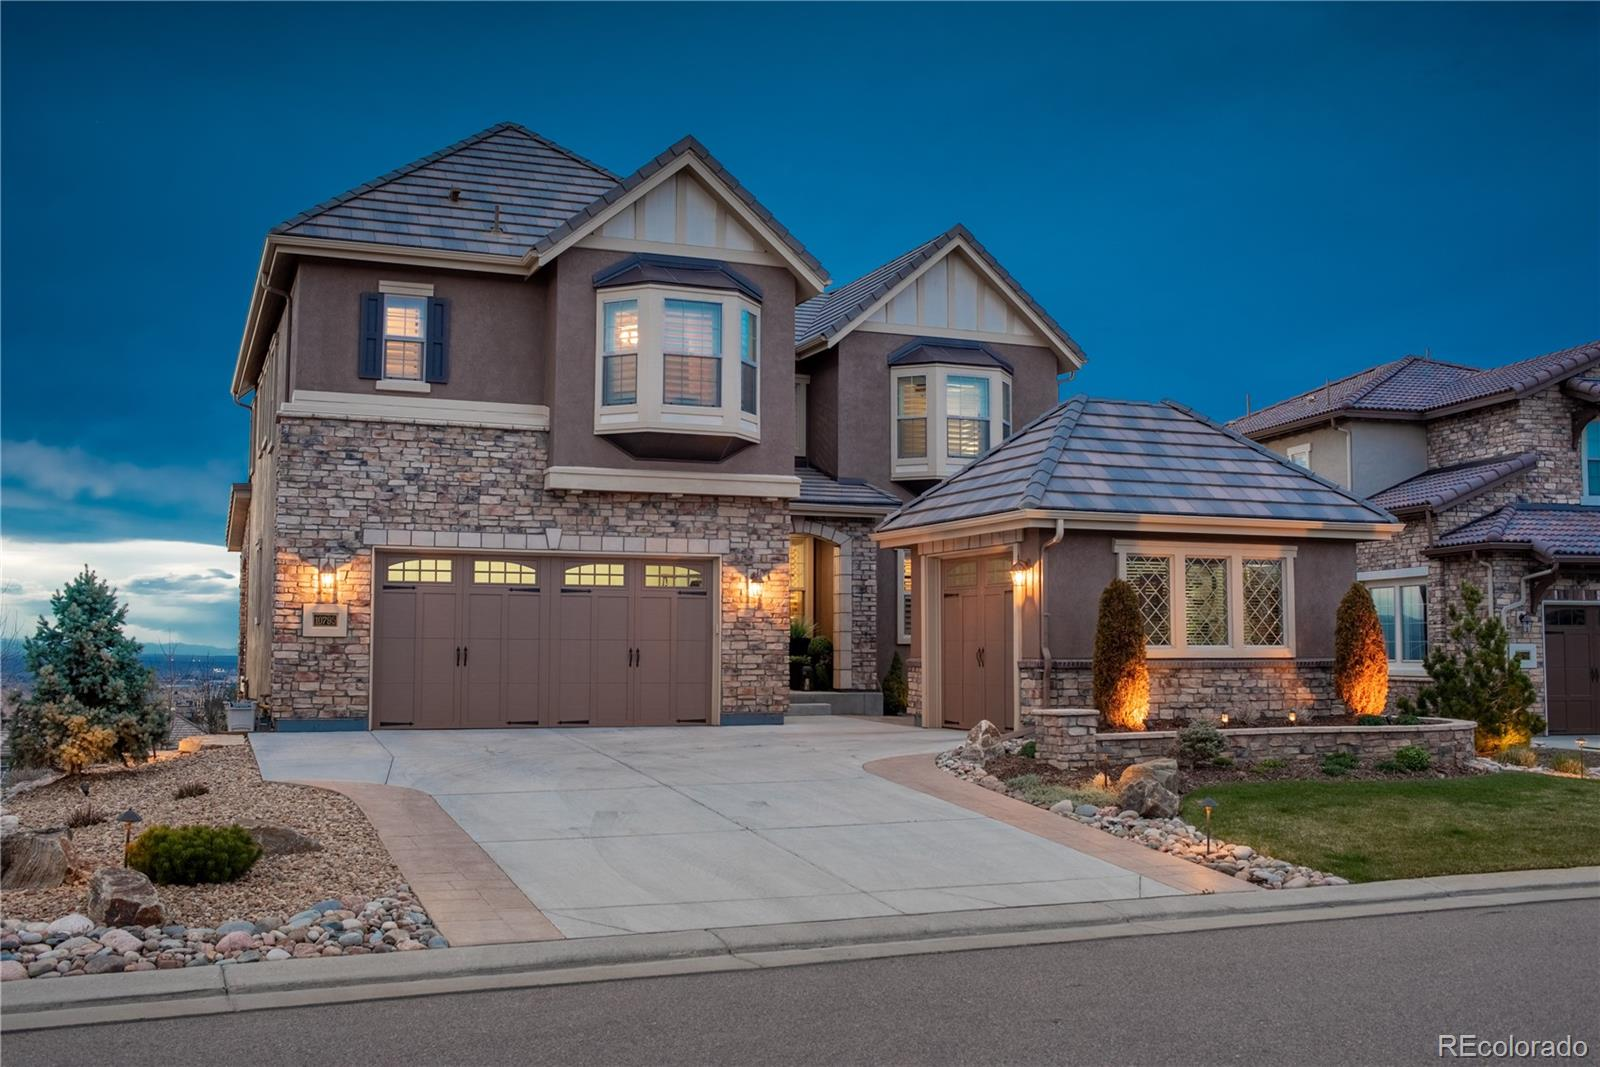 10795 Timberdash Avenue, Highlands Ranch, CO 80126 - Highlands Ranch, CO real estate listing